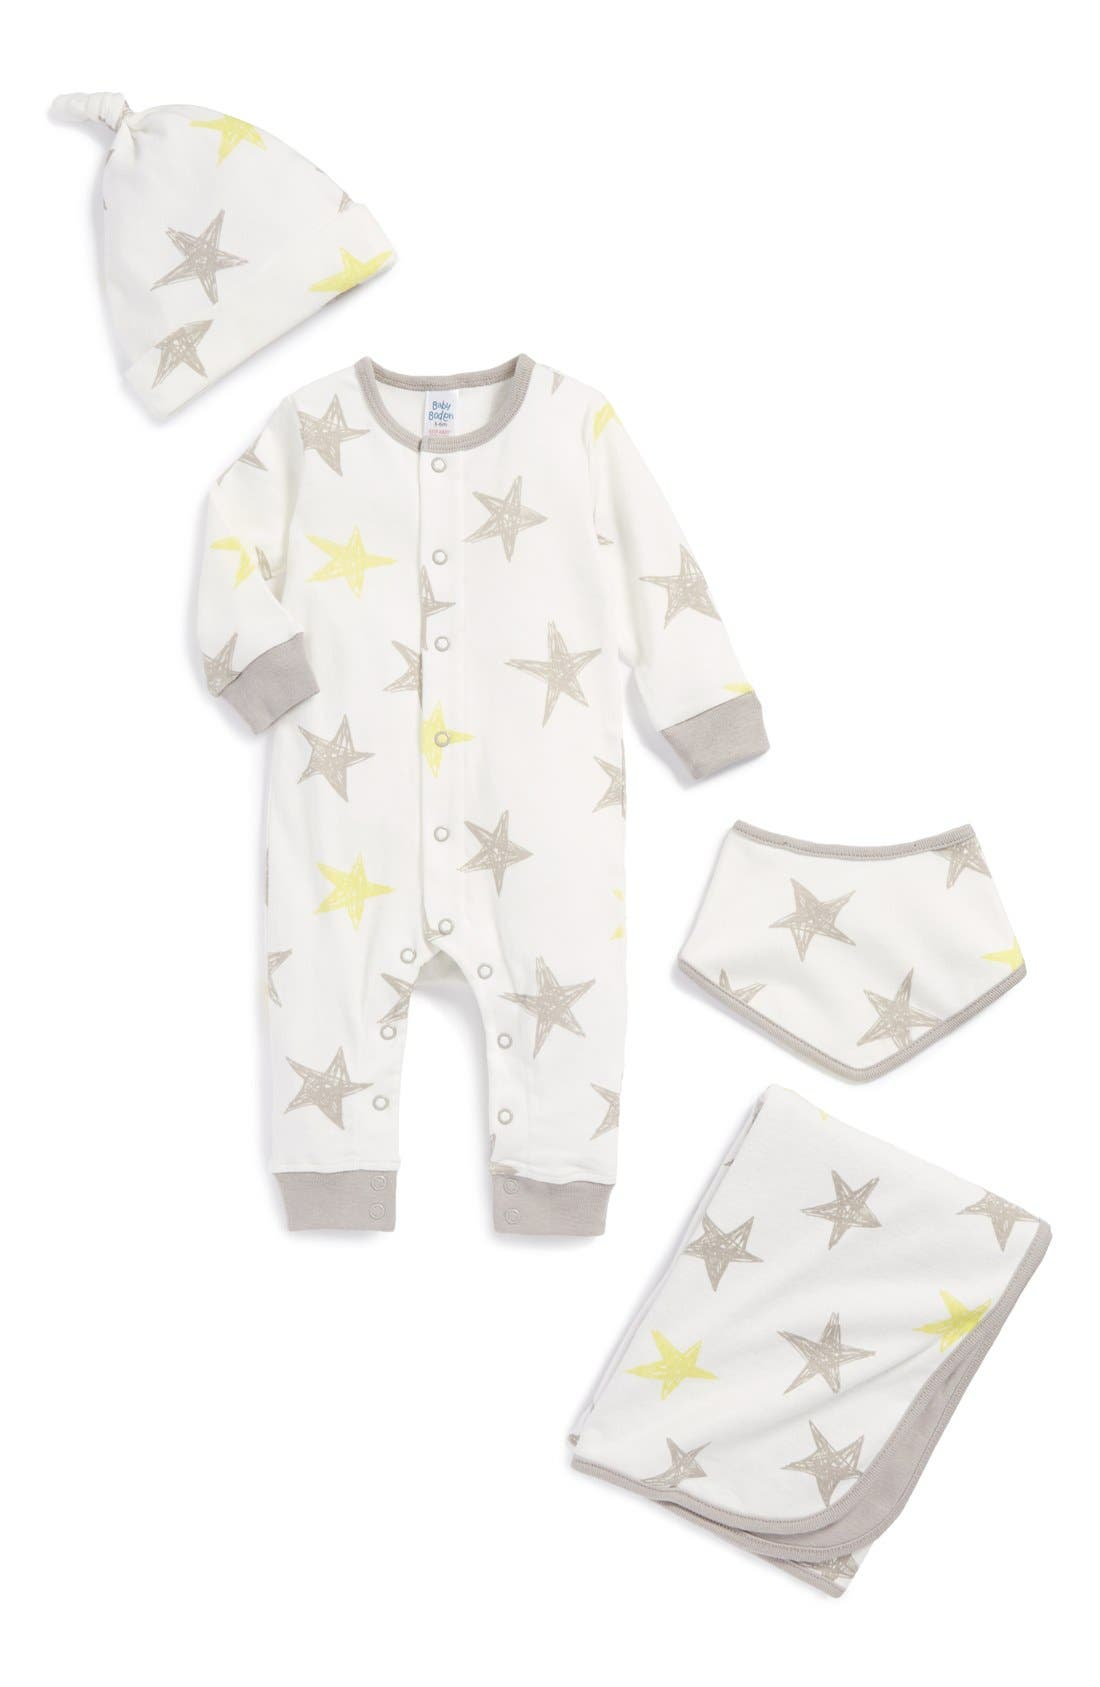 Alternate Image 1 Selected - Mini Boden Romper, Blanket, Bib & Hat Set (Baby)